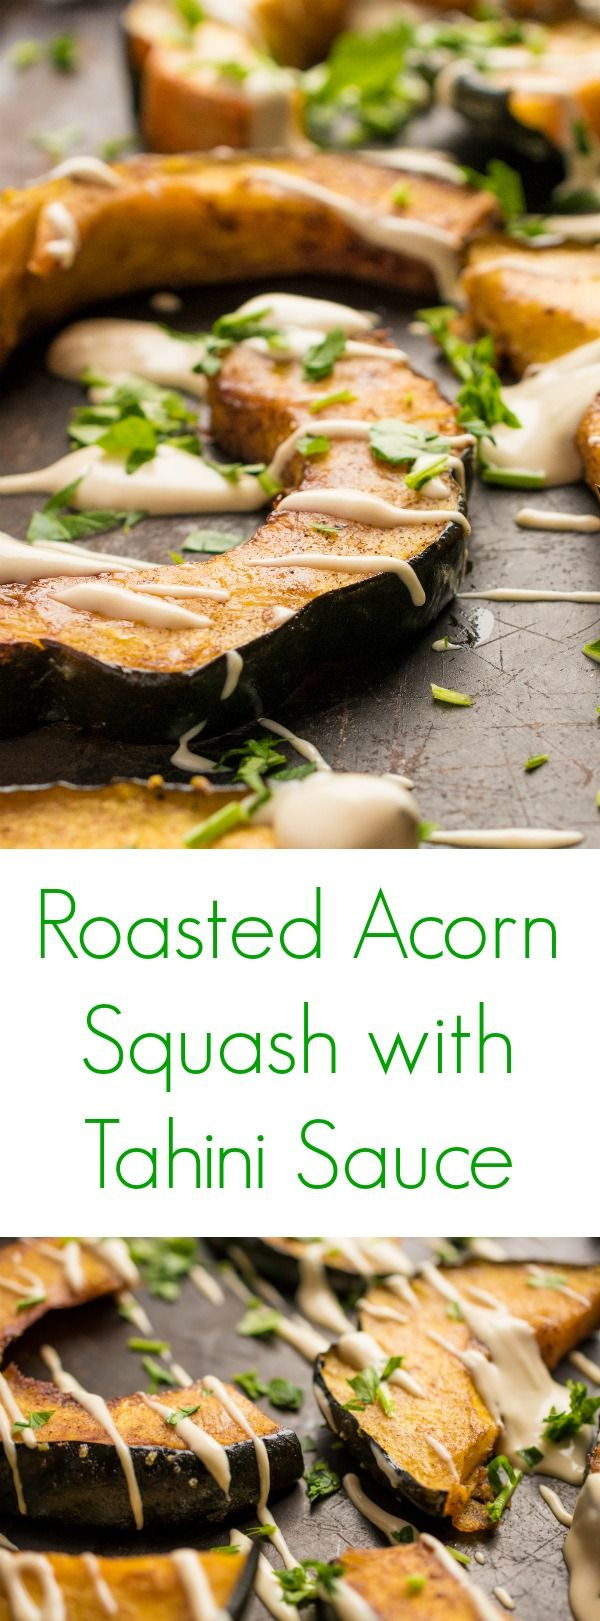 A healthy and easy side dish recipe, your whole family will love this cinnamon-spiced roasted acorn squash drizzled in an addictive tahini lemon sauce.